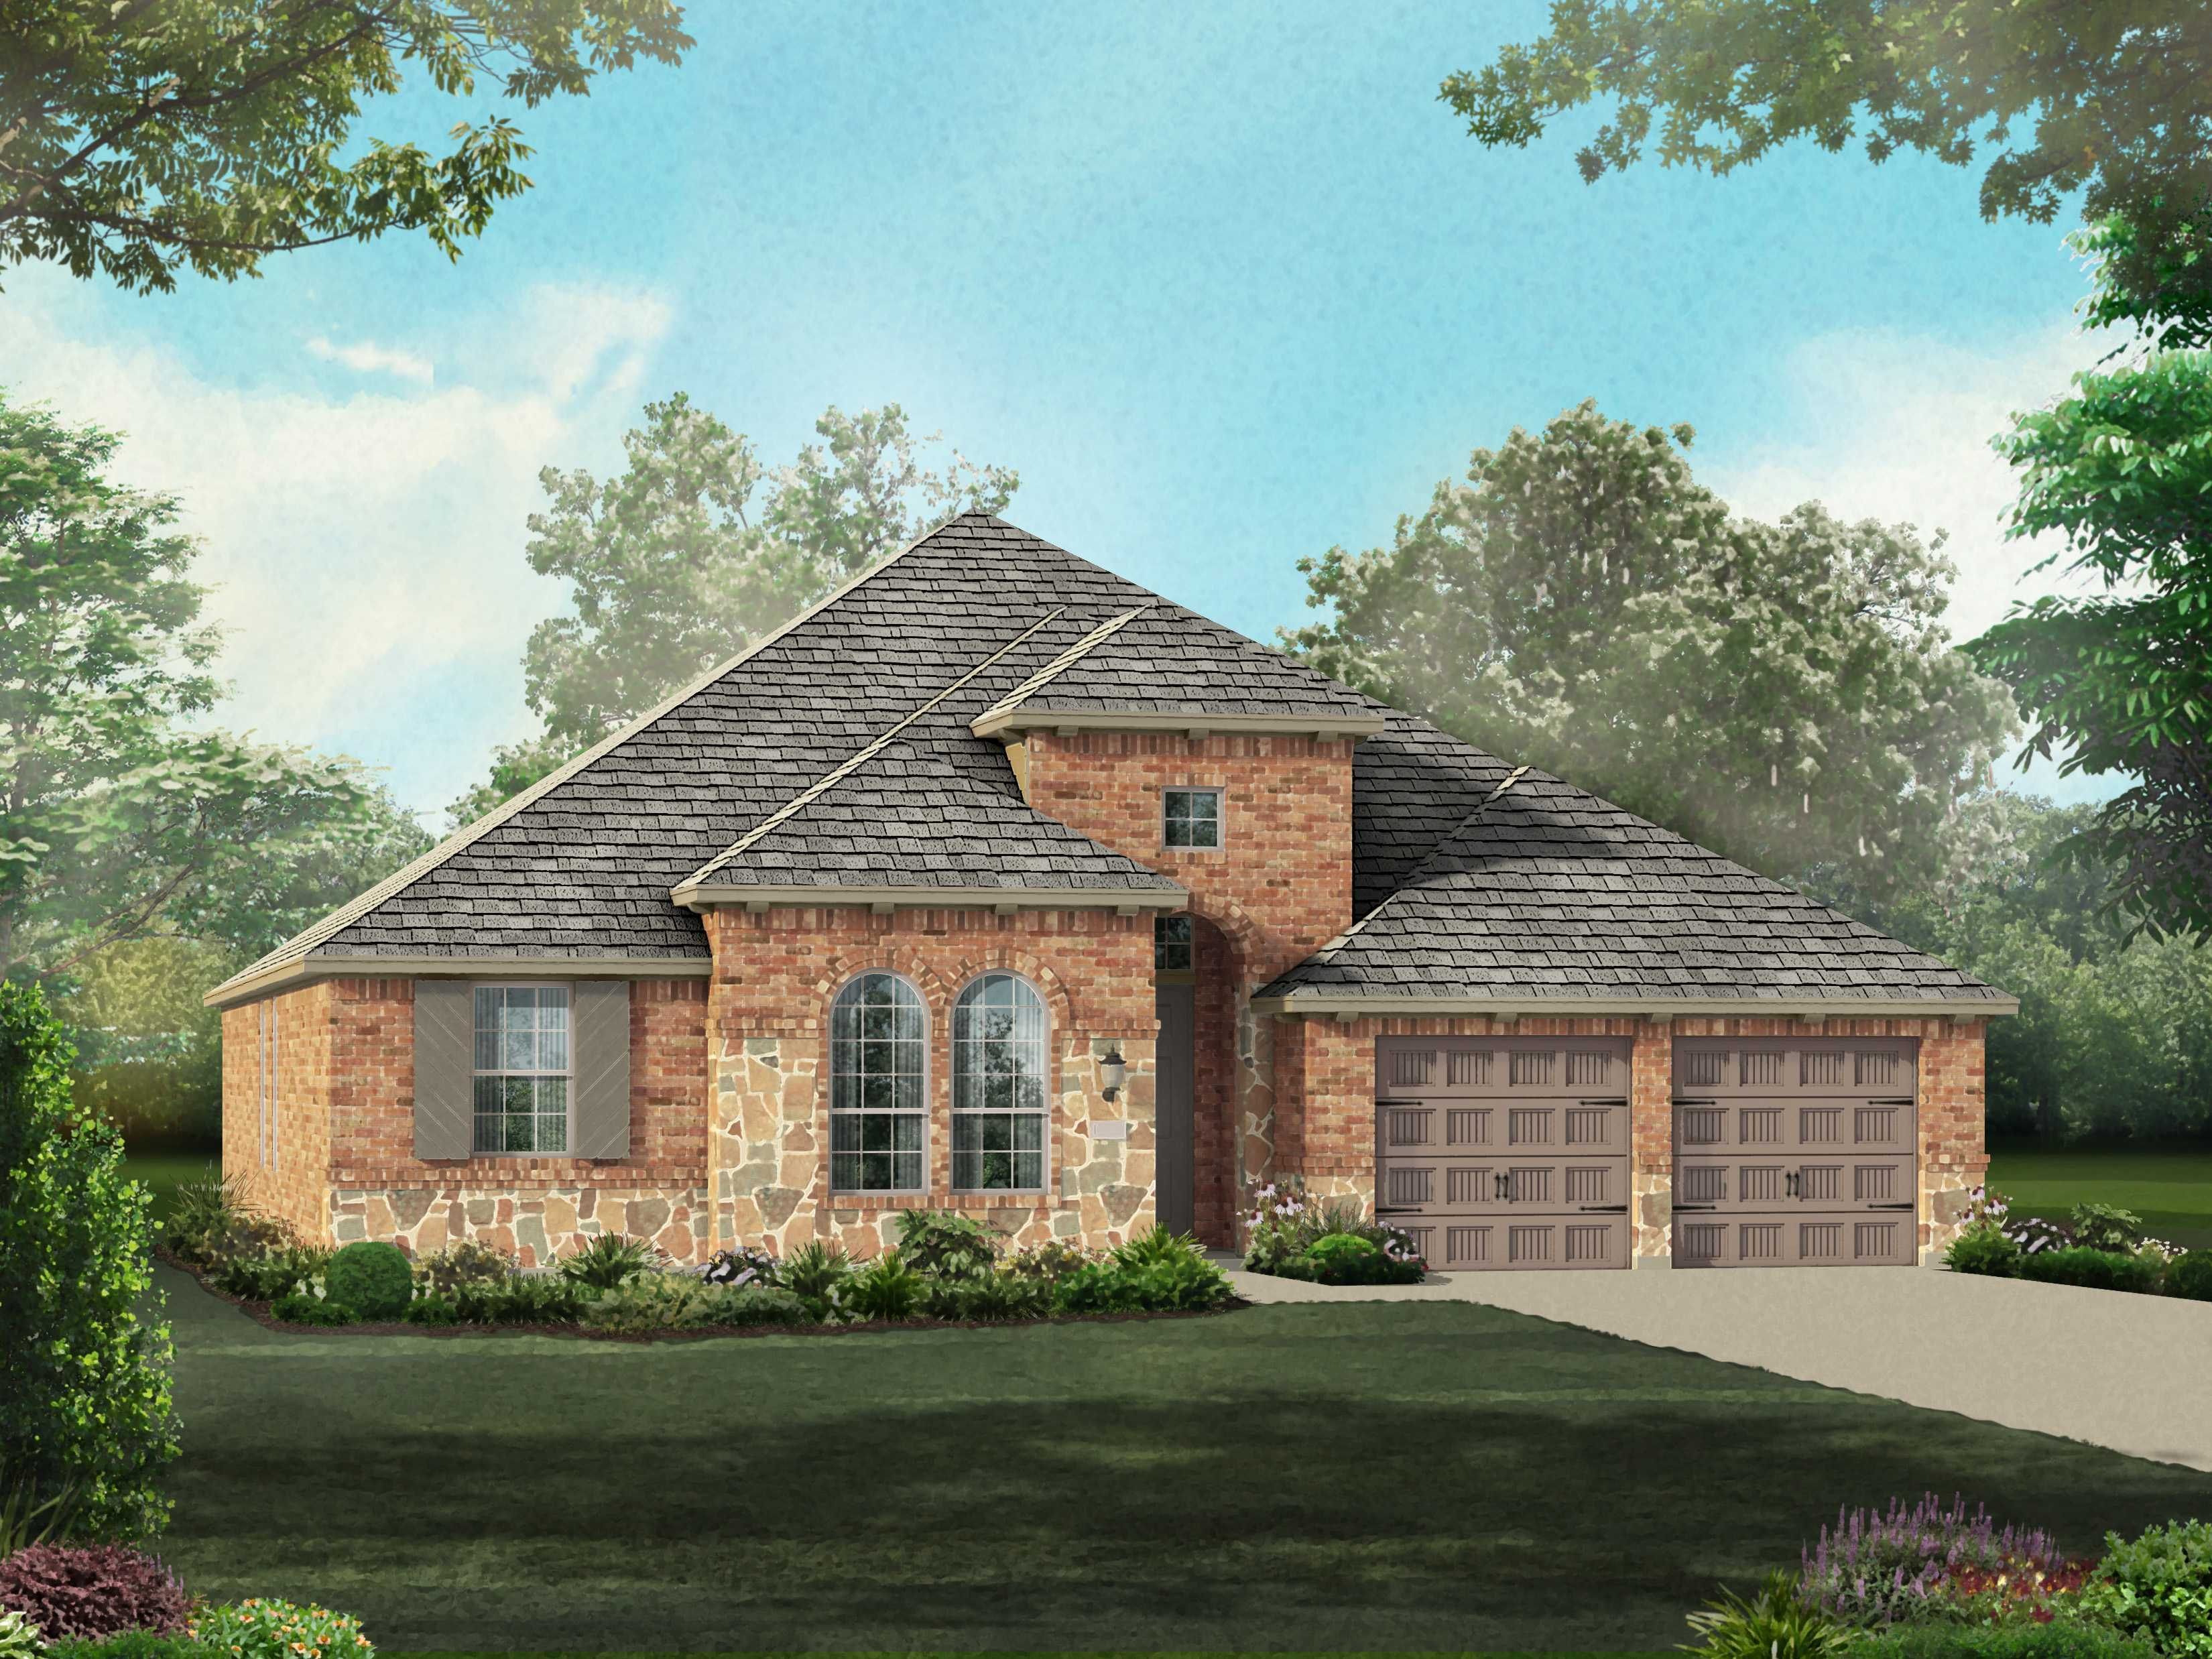 Plan 201 by highland homes long meadow farms for Richmond house plan